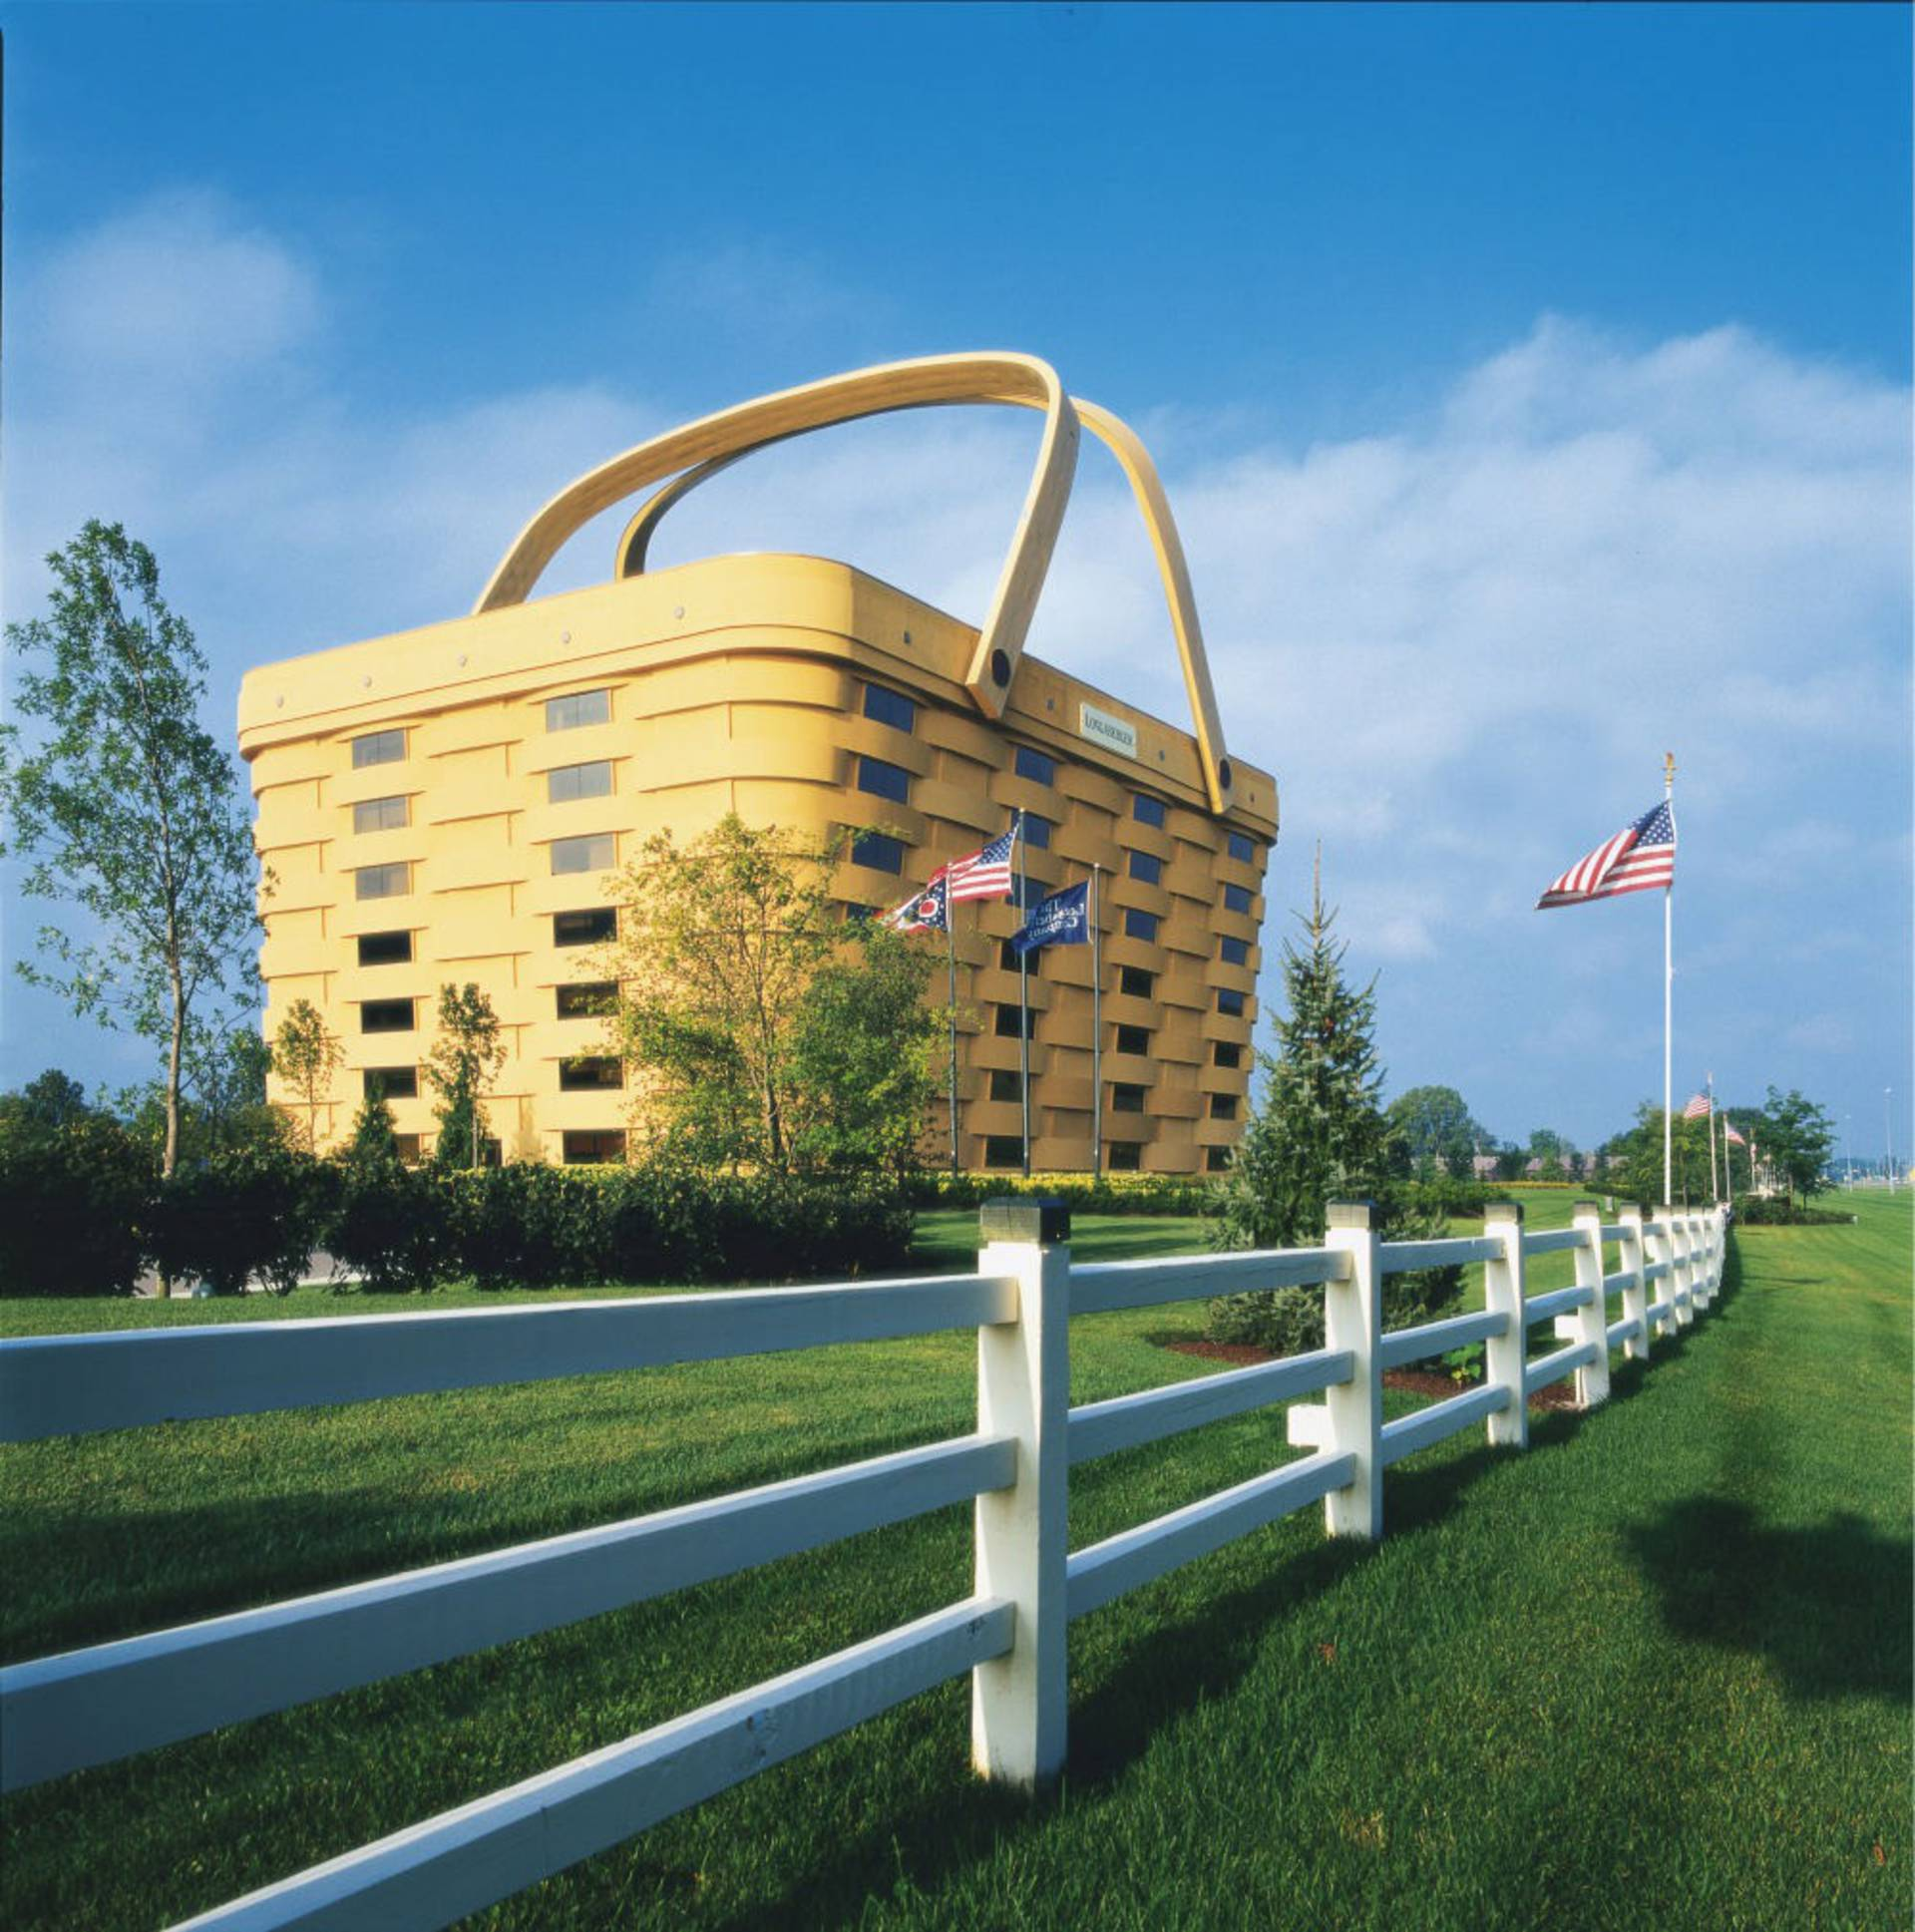 ... The Longaberger Company In Newark, Ohio, United States: The Basket  Building Gallery